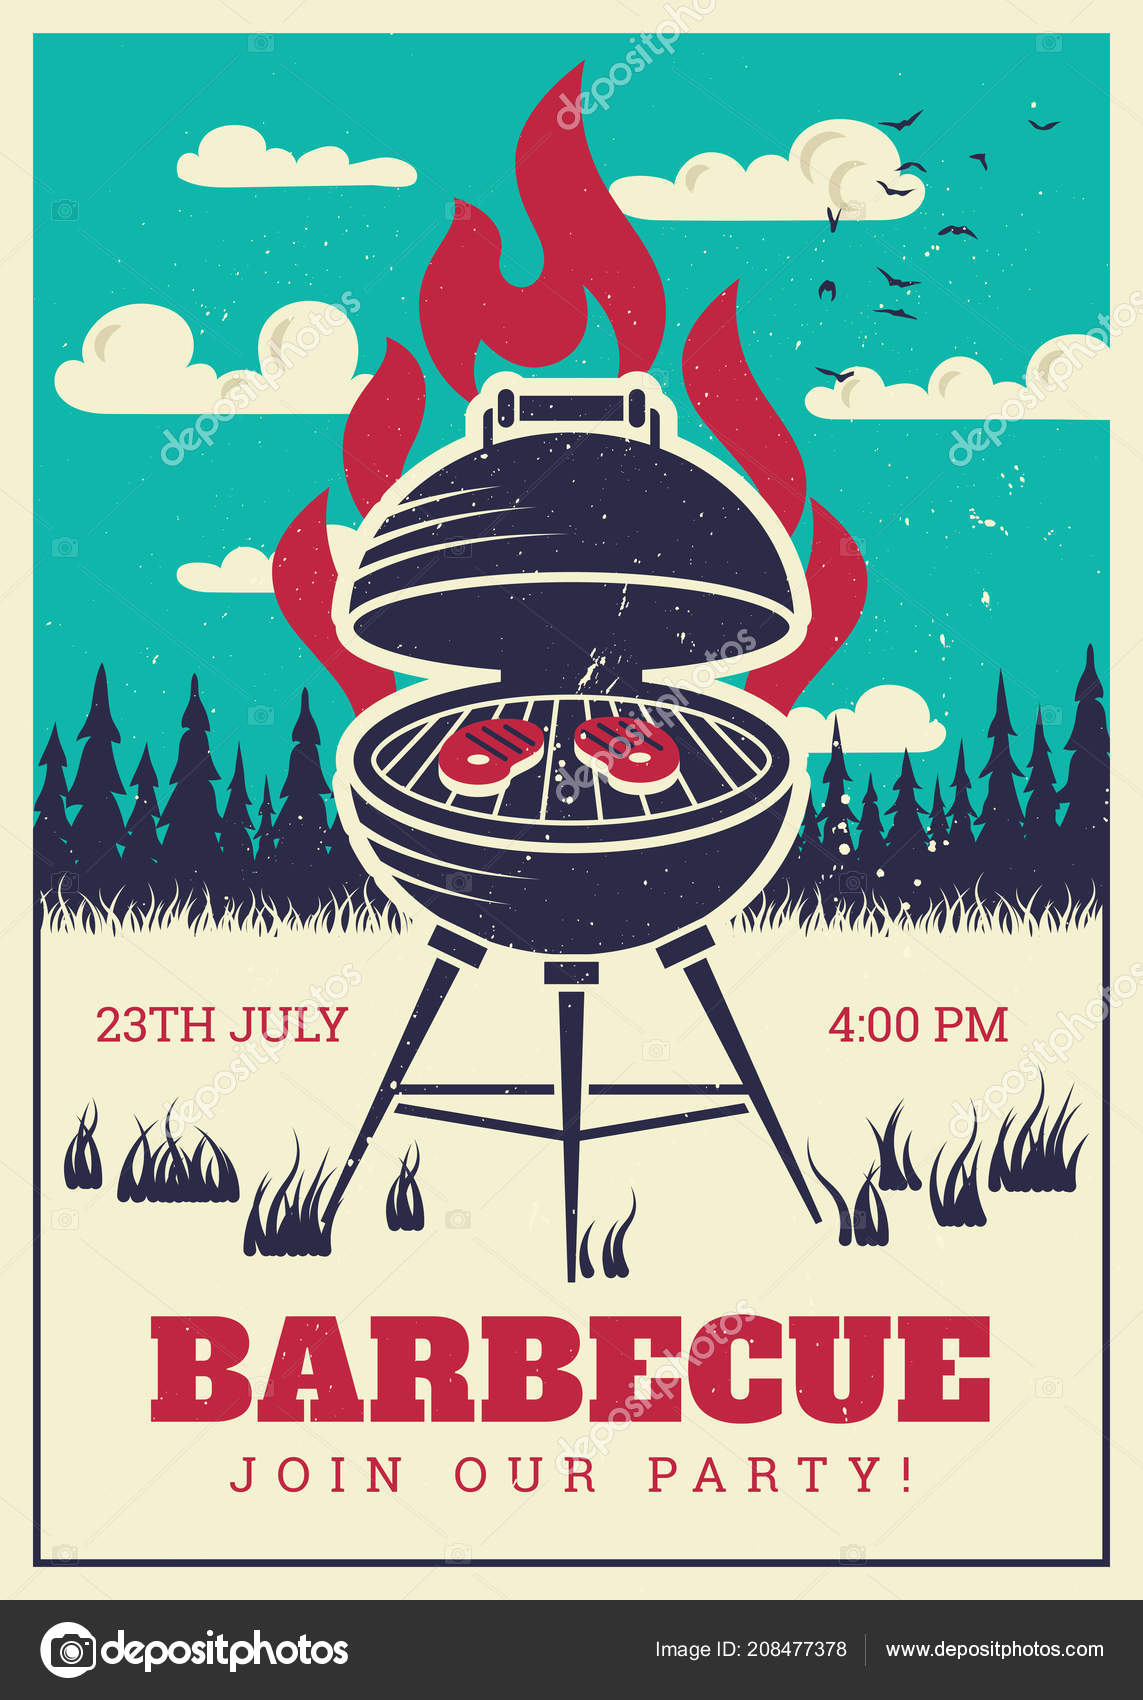 vintage bbq grill party poster delicious grilled burgers family